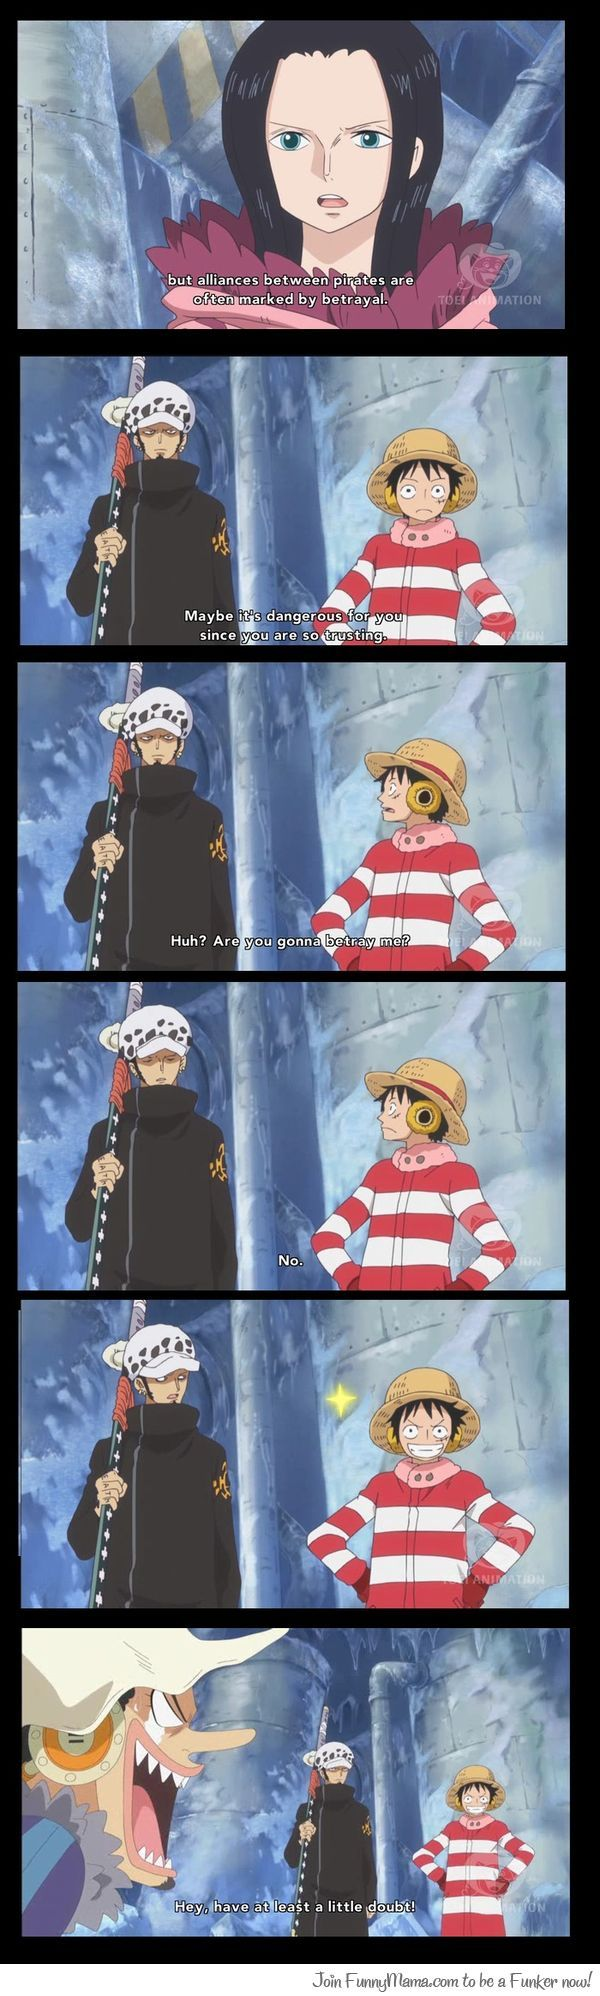 Luffy was probably the little kid who always fell 4 the kidnapper's 'help me find my lost puppy' routine